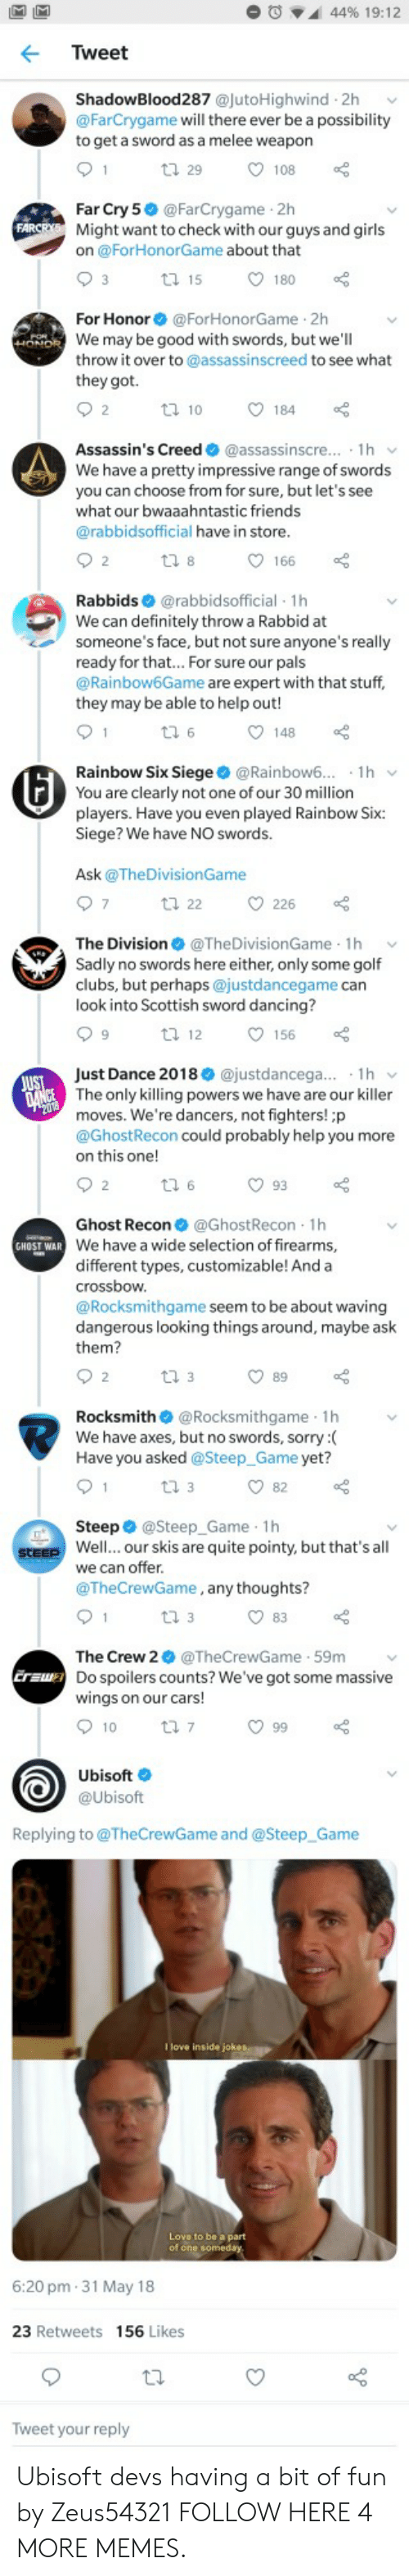 crossbow: M IM  44% 19:12  Tweet  ShadowBlood287 @jutoHighwind 2h  @FarCrygame will there ever be a possibility  to get a sword as a melee weapon  1  ti 29  108  Far Cry 5 @FarCrygame 2h  Might want to check with our guys and girls  on @ForHonorGame about that  FARCRYS  3  180  t 15  For Honor@ForHonorGame 2h  HONDR We may be good with swords, but we'll  throw it over to @assassinscreed to see what  POH  they got.  2  184  t10  Assassin's Creed @assassinscre... 1h  We have a pretty impressive range of swords  you can choose from for sure, but let's see  what our bwaaahntastic friends  @rabbidsofficial have in store.  2  166  ti 8  Rabbids @rabbidsofficial 1h  We can definitely throw a Rabbid at  someone's face, but not sure anyone's really  ready for that.. For sure our pals  @Rainbow6Game are expert with that stuff,  they may be able to help out!  1  148  Rainbow Six Siege @Rainbow6..  You are clearly not one of our 30 million  1h  players. Have you even played Rainbow Six:  Siege? We have NO swords.  Ask@TheDivisionGame  7  226  t 22  The Division@The DivisionGame 1h  Sadly no swords here either, only some golf  clubs, but perhaps @justdancegame can  look into Scottish sword dancing?  9  156  t 12  Just Dance 2018 @justdancega... 1h  JUST  DANCE The only killing powers we have are our killer  moves. We're dancers, not fighters! ;p  @GhostRecon could probably help you more  on this one!  93  2  t 6  Ghost Recon @GhostRecon 1h  GHOST WAR We have a wide selection of firearms,  different types, customizable! And a  crossbow  @Rocksmithgame seem to be about waving  dangerous looking things around, maybe ask  them?  2  89  t 3  Rocksmith@Rocksmithgame 1h  We have axes, but no swords, sorry :  Have you asked @Steep_Game yet?  1  82  t 3  Steep @Steep_Game 1h  steep Well... our skis are quite pointy, but that's all  we can offer.  @TheCrewGame, any thoughts?  1  t 3  83  The Crew 2@TheCrewGame 59m  Eraw Do spoilers counts? We've got some massive  wings on our cars!  10  t